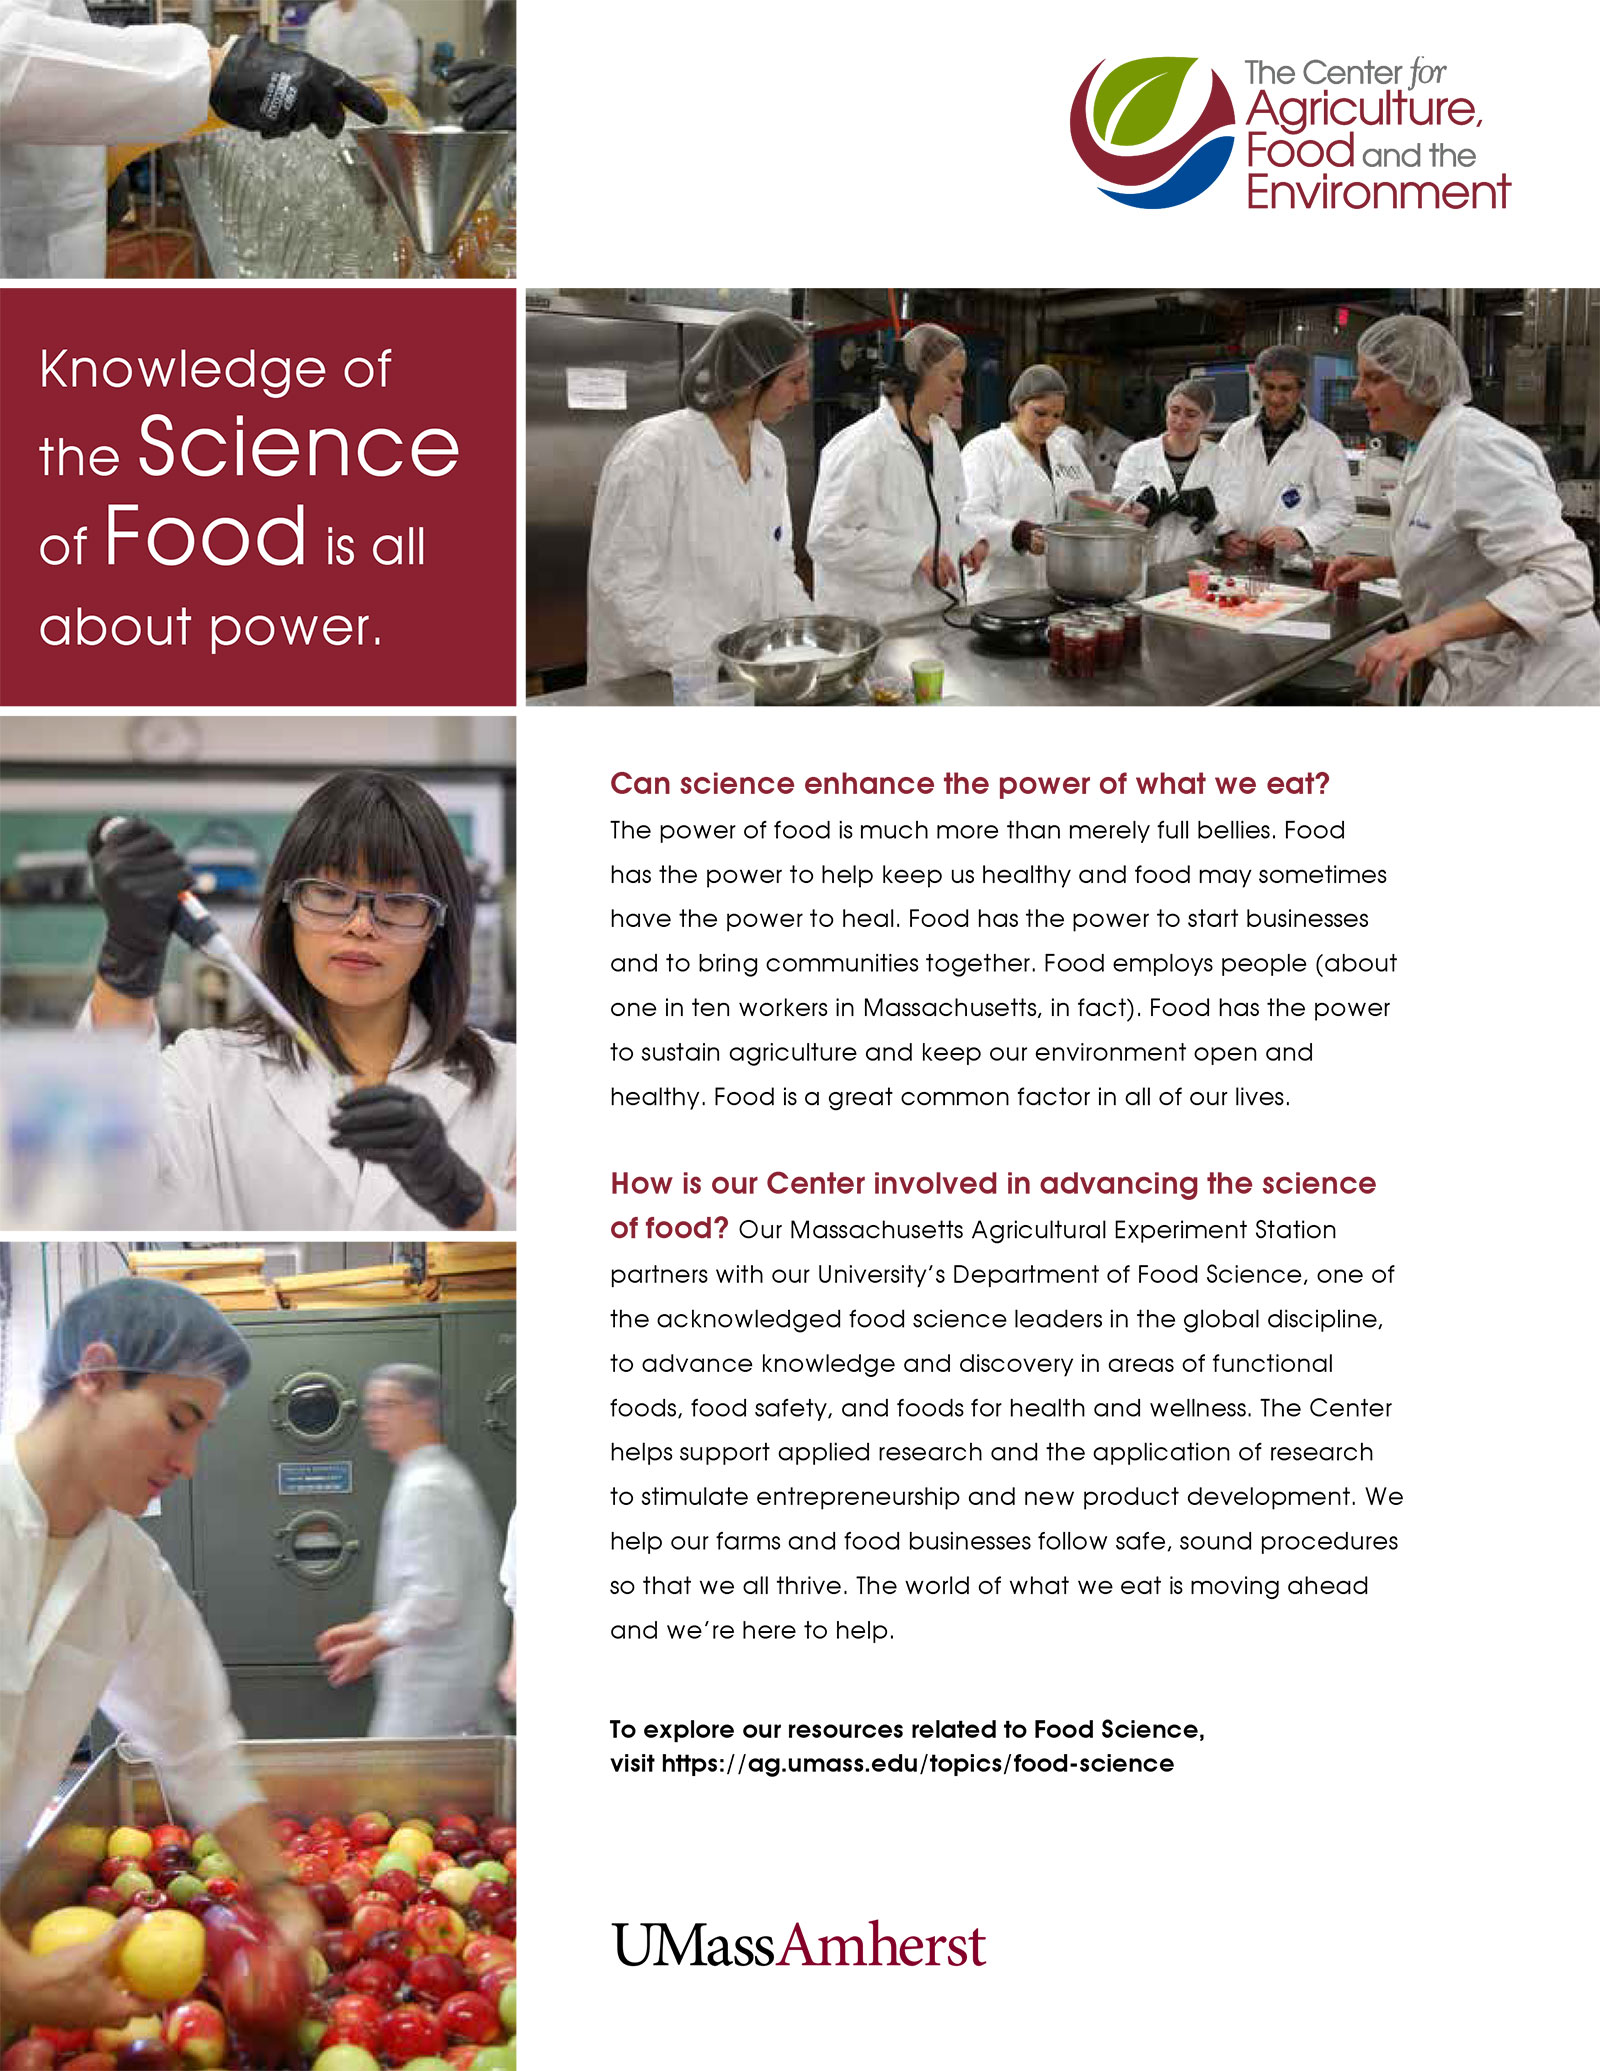 Food Science insert for CAFE promotional material